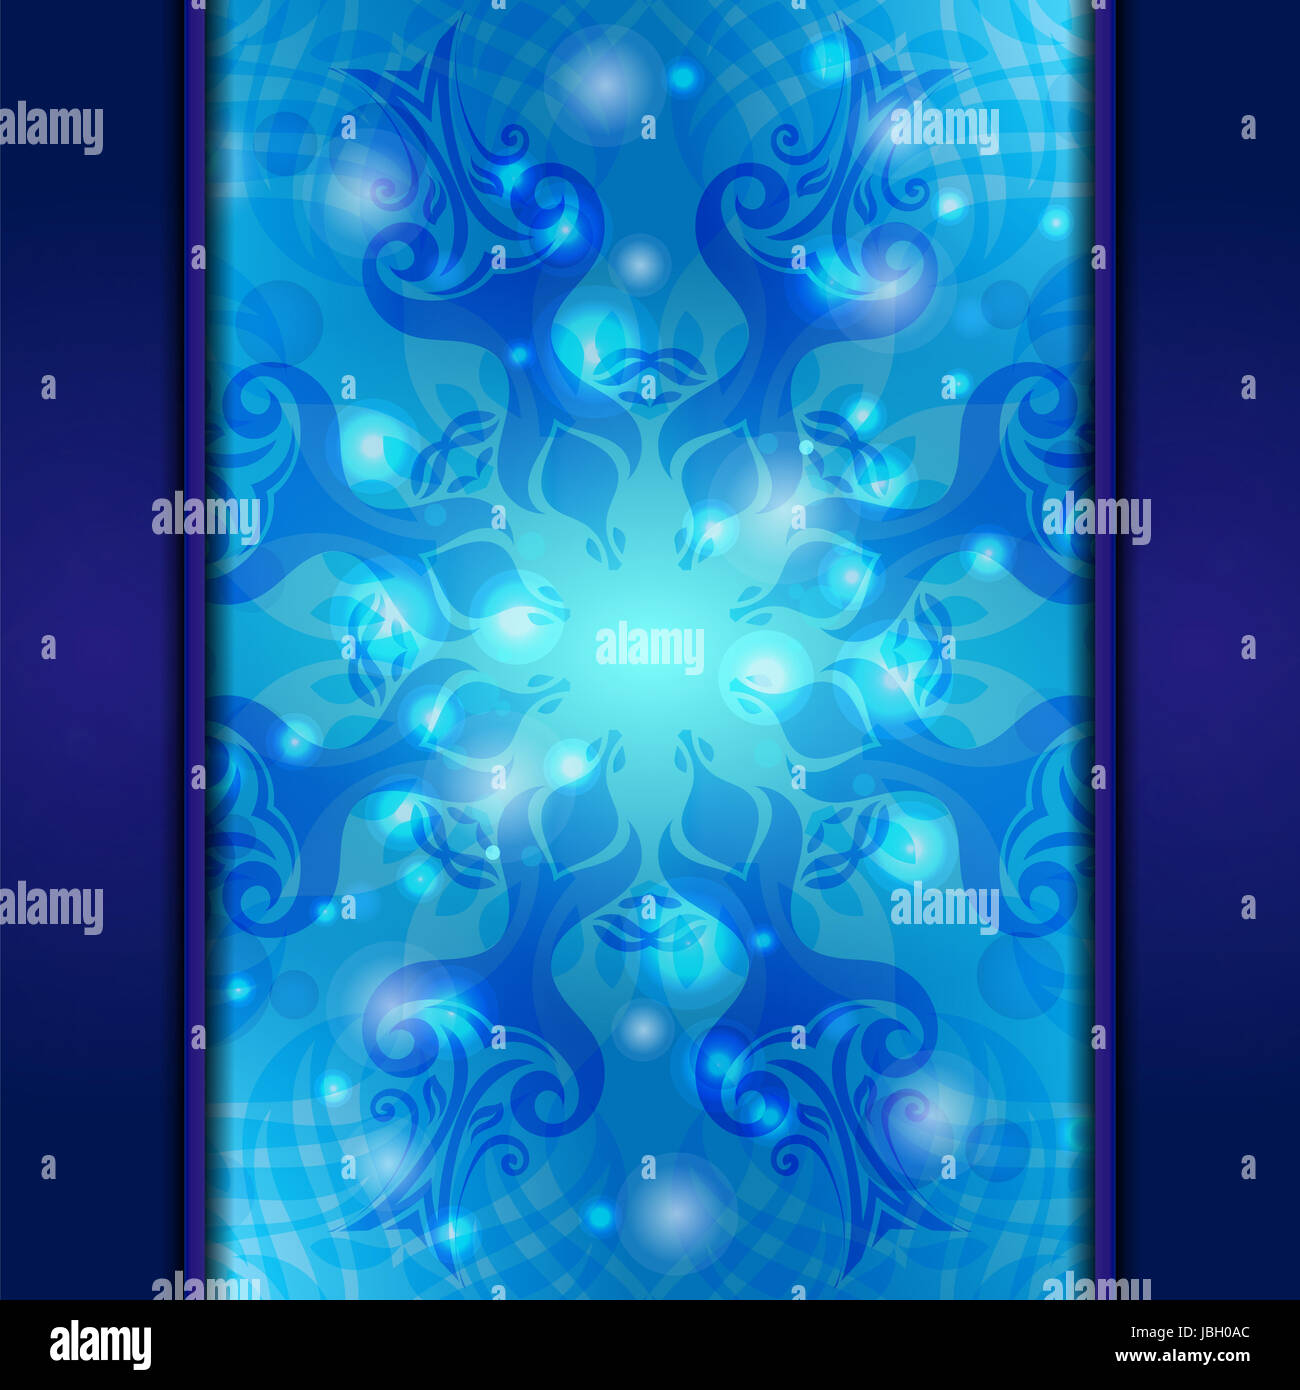 https www alamy com stock photo blue vintage vector abstract background can be used for banner invitation 144817636 html